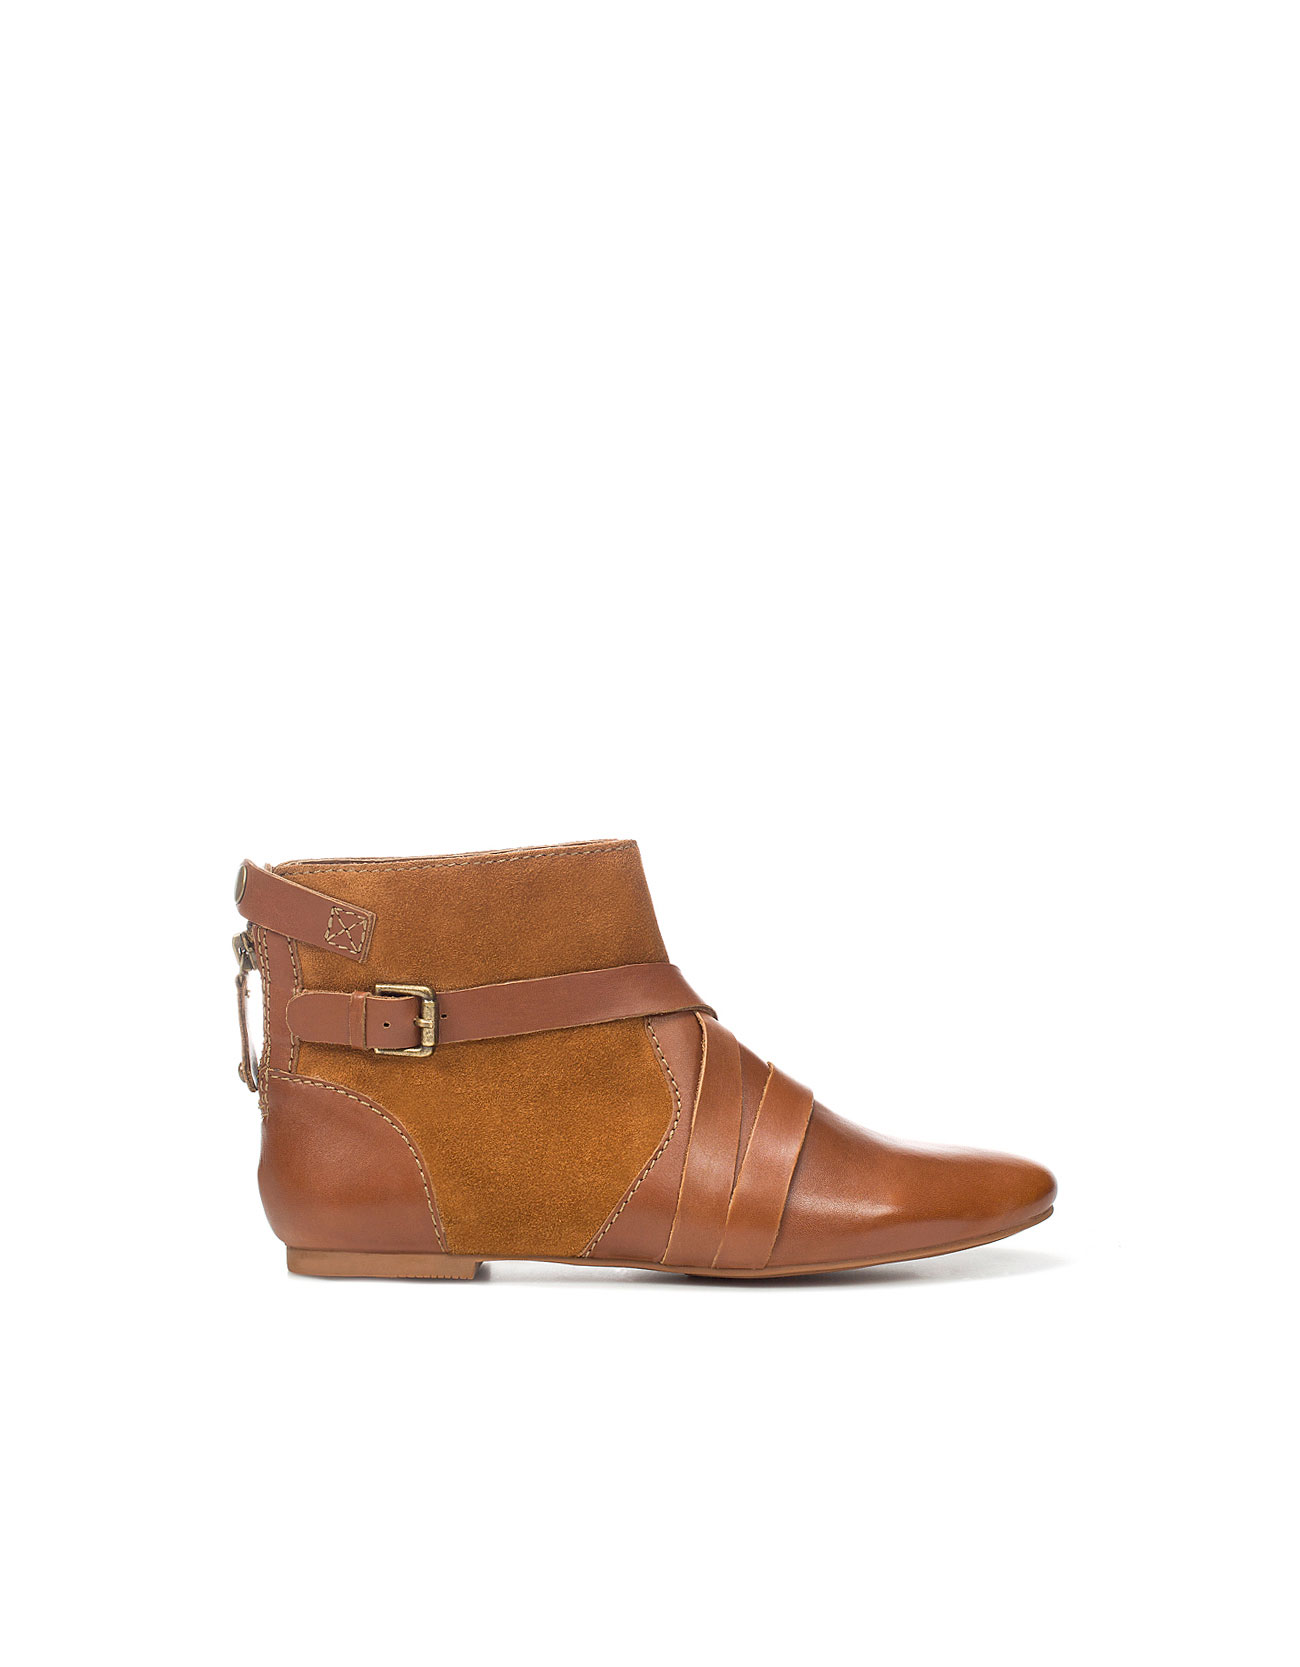 zara combined flat ankle boot in brown lyst